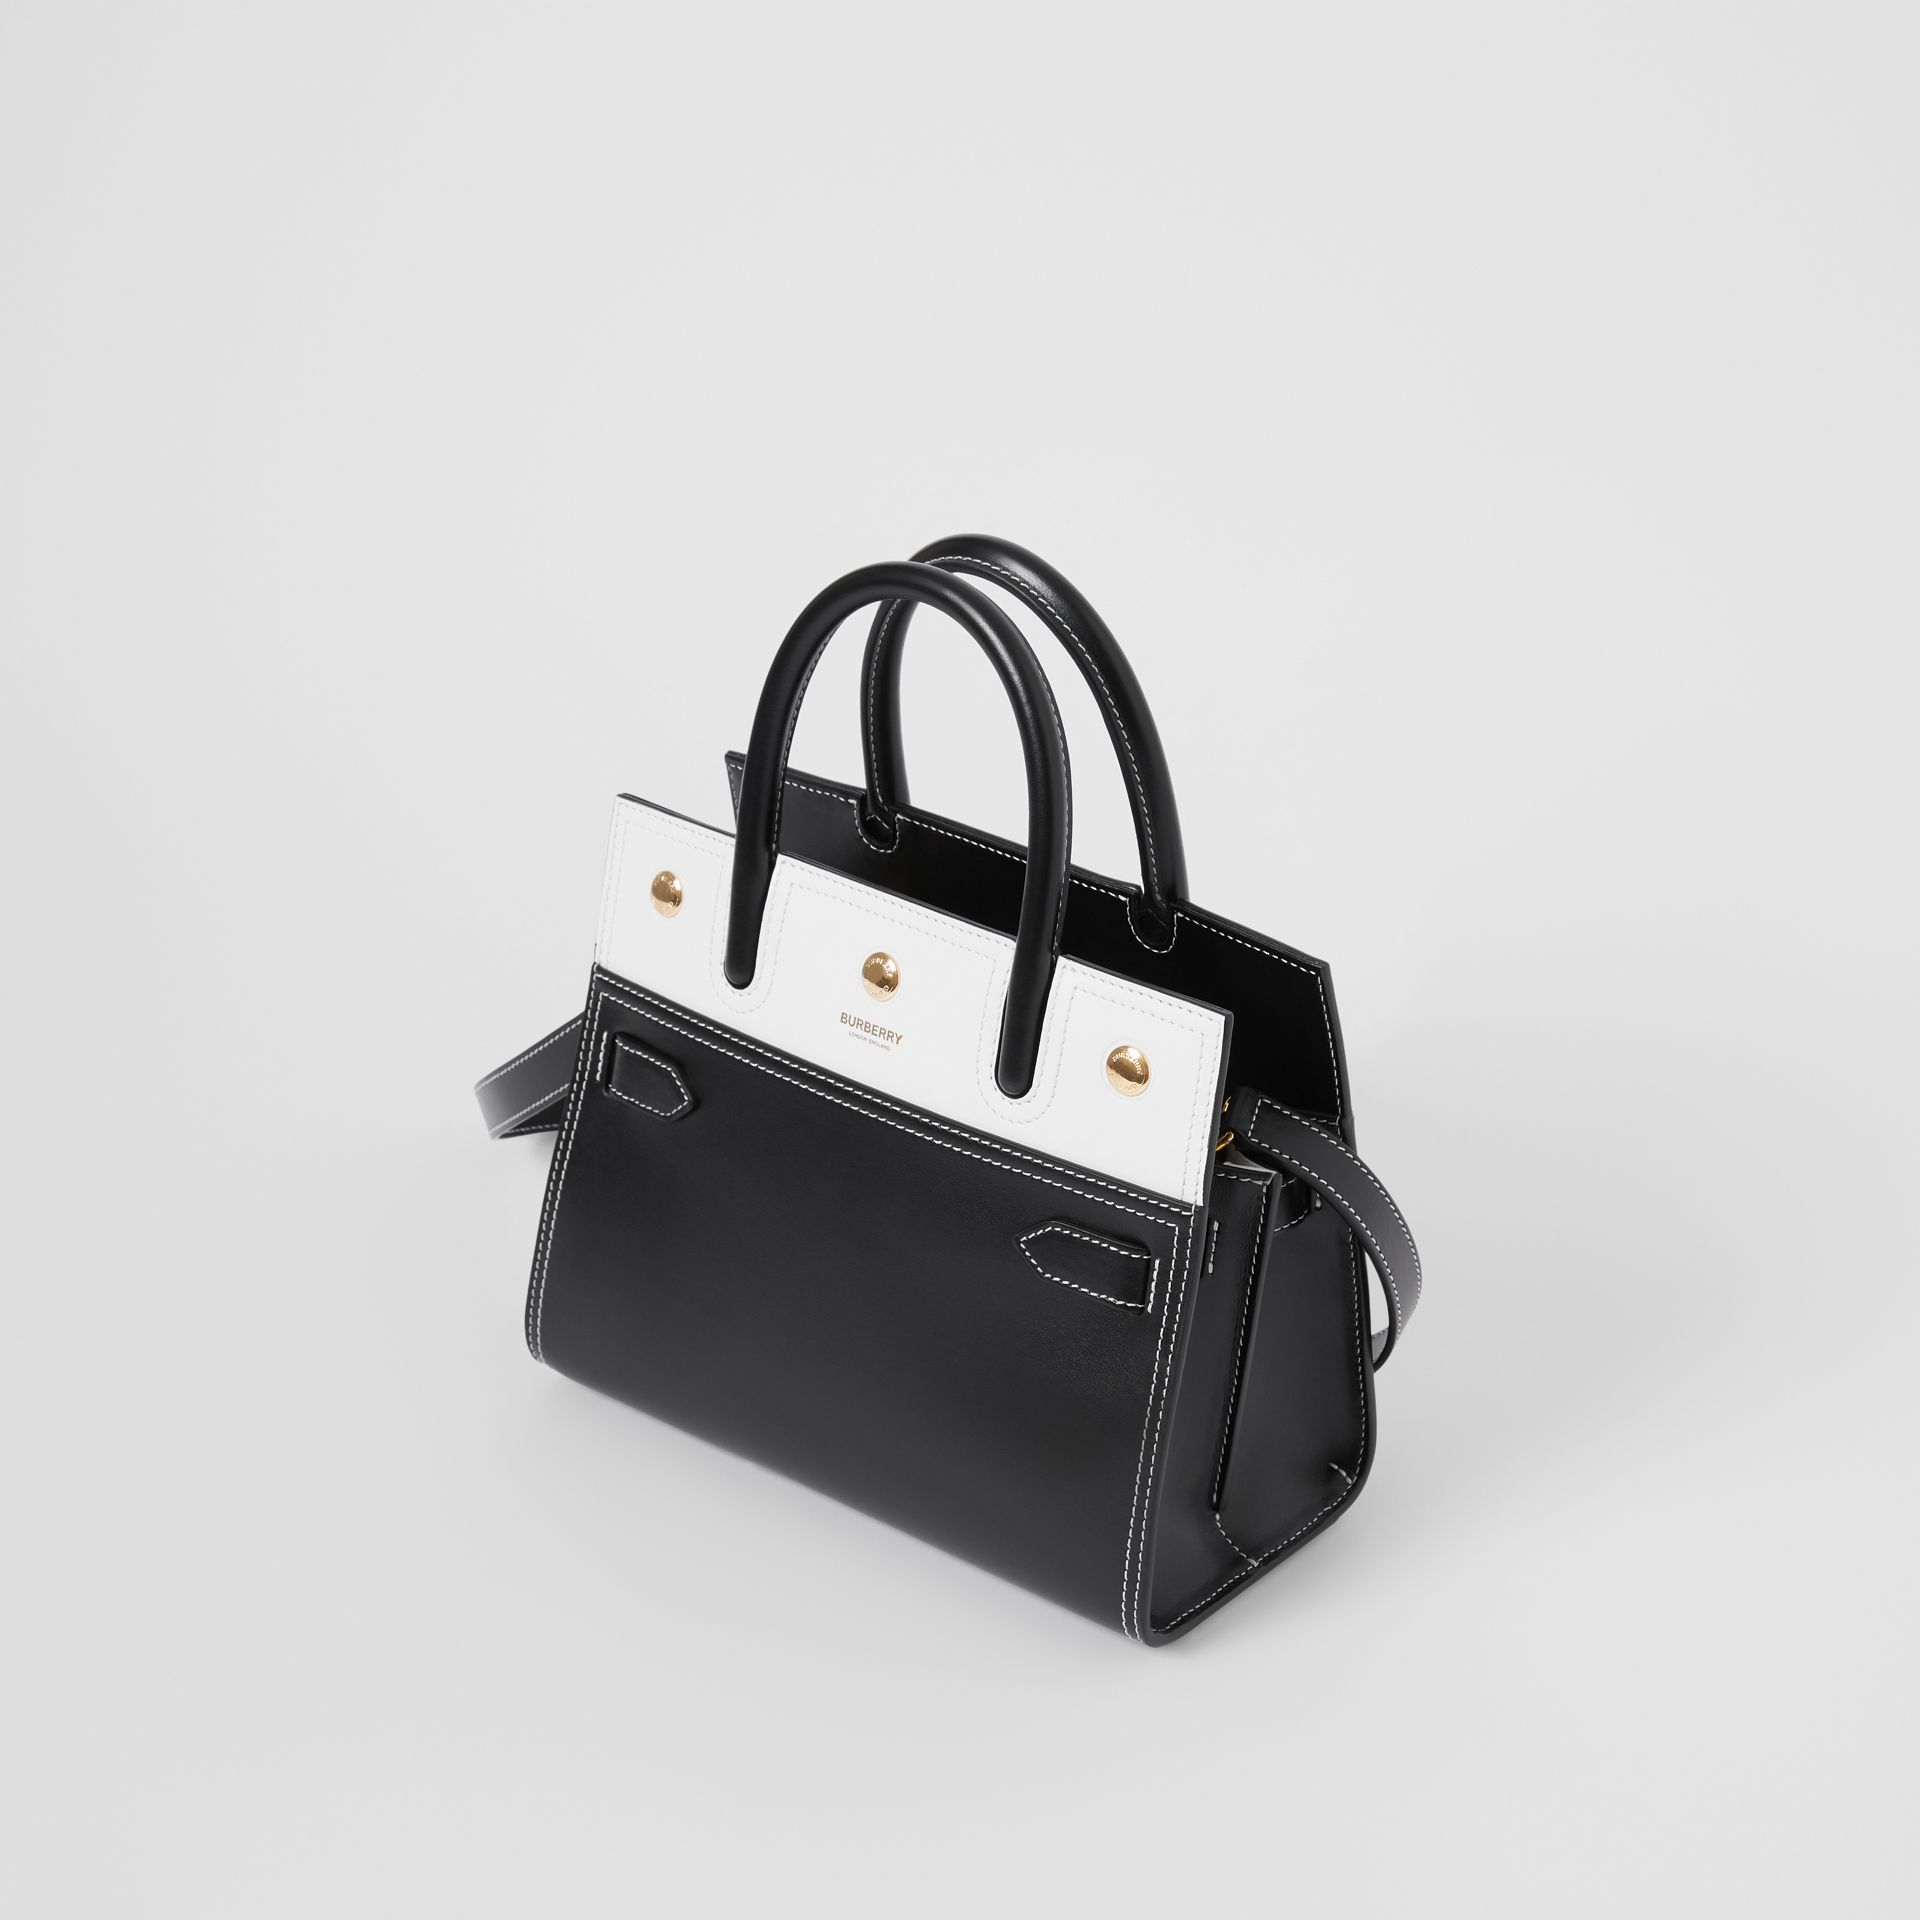 Mini Leather Two-handle Title Bag in Black/white - Women | Burberry - gallery image 2